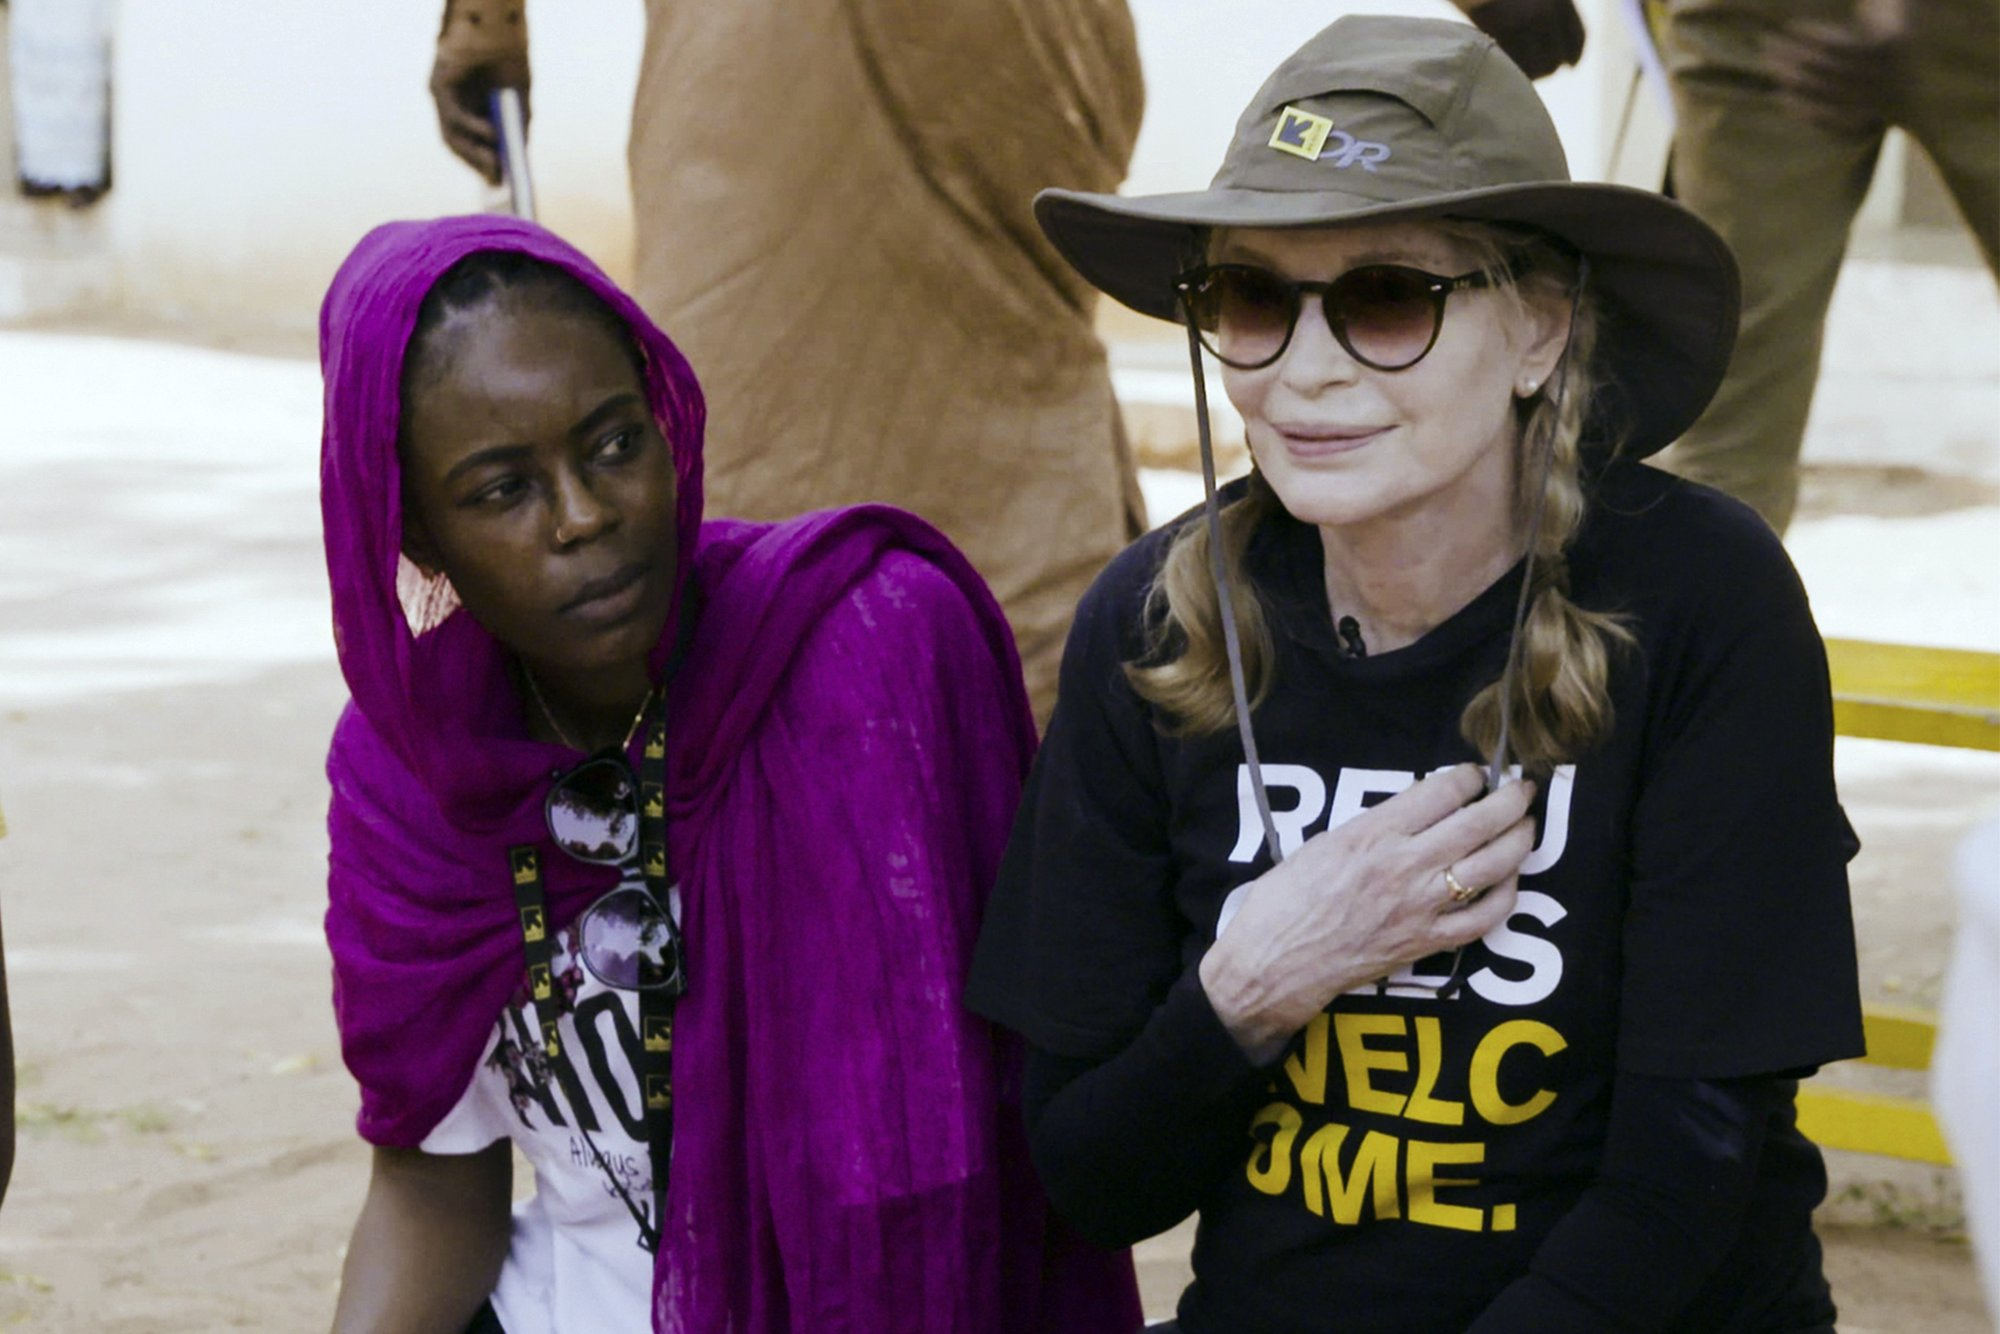 Mia Farrow visits Chad to promote new approach to hunger